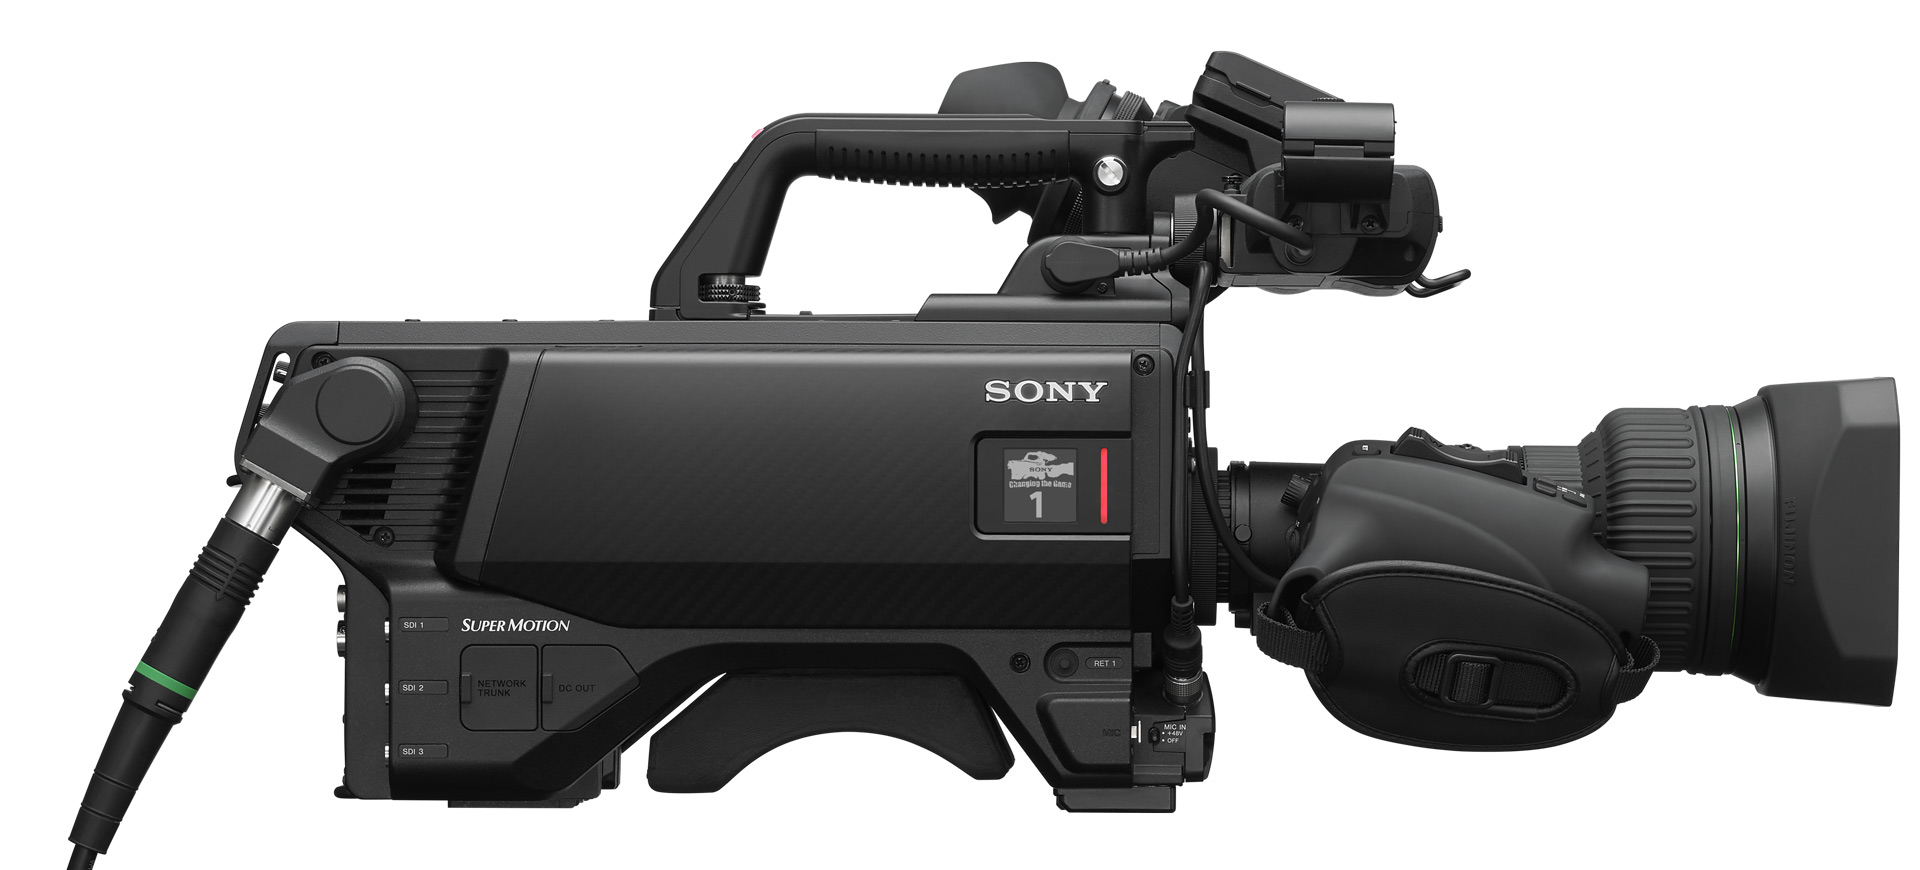 Sony HDC-5500 side view